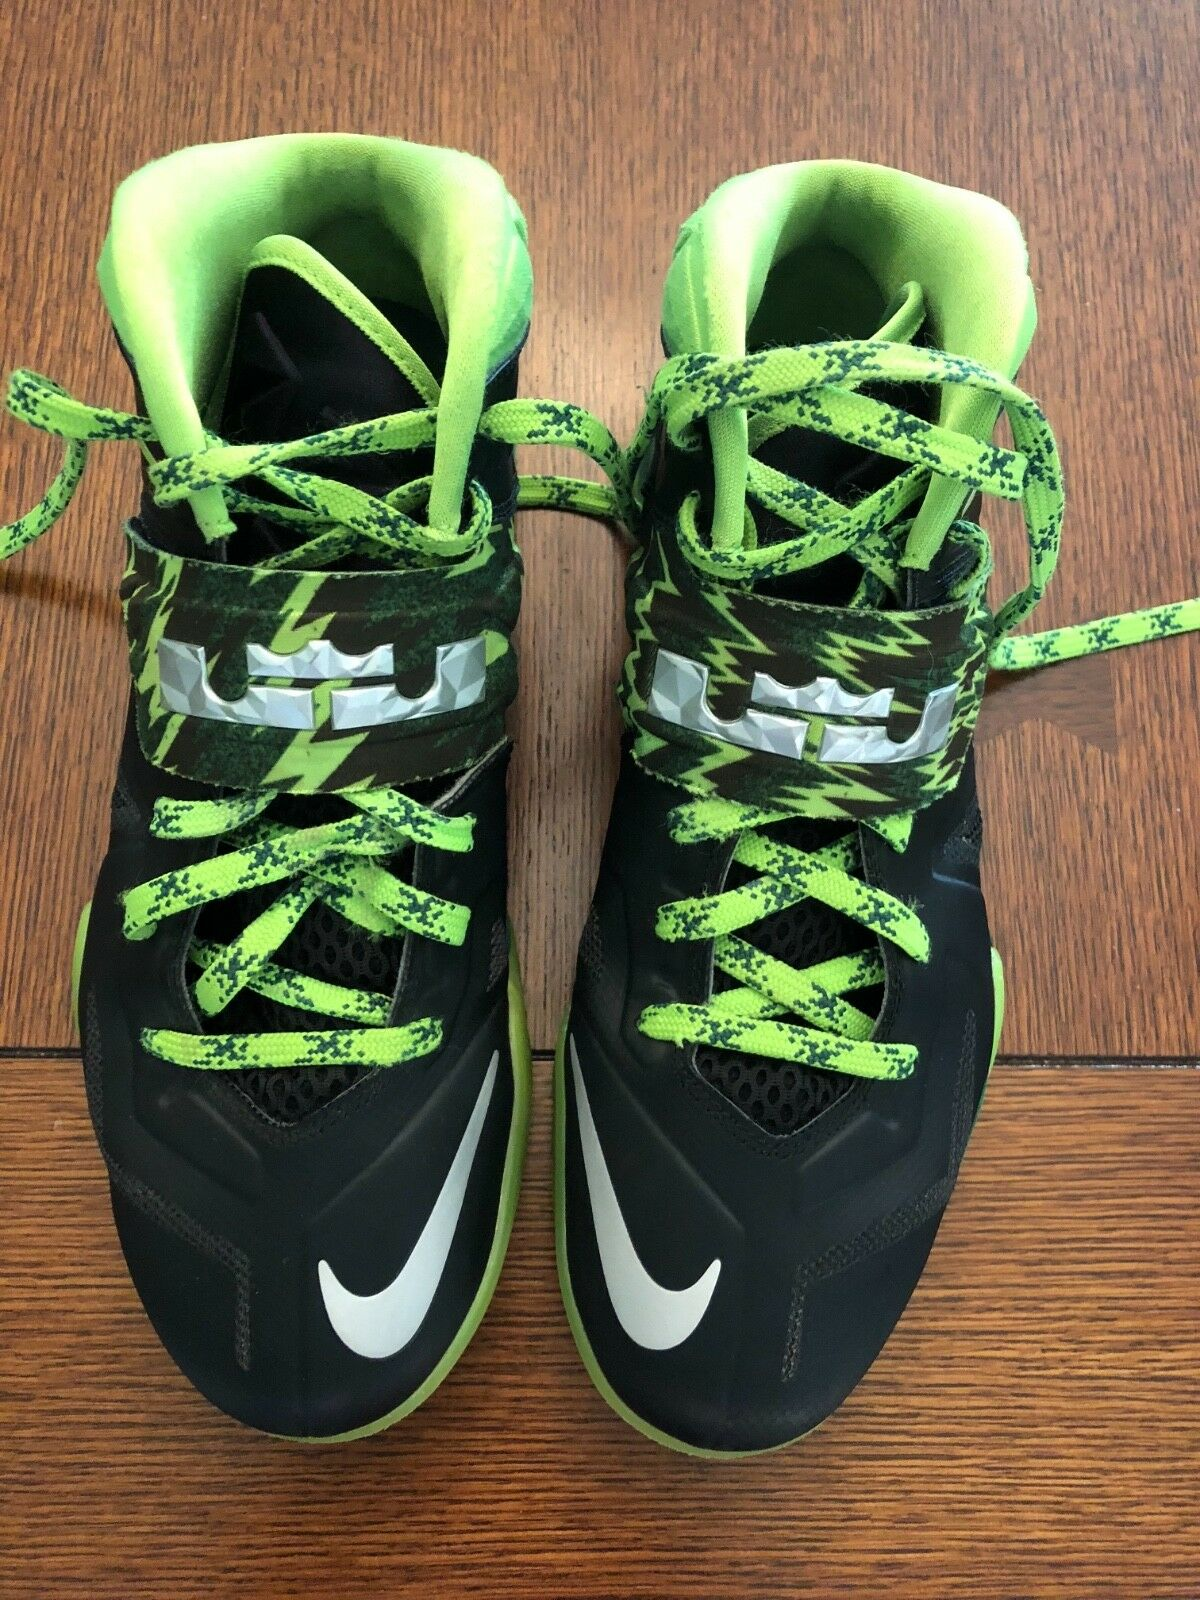 Lebron Nike Zoom Soldier VIIi PP size 9 best-selling model of the brand